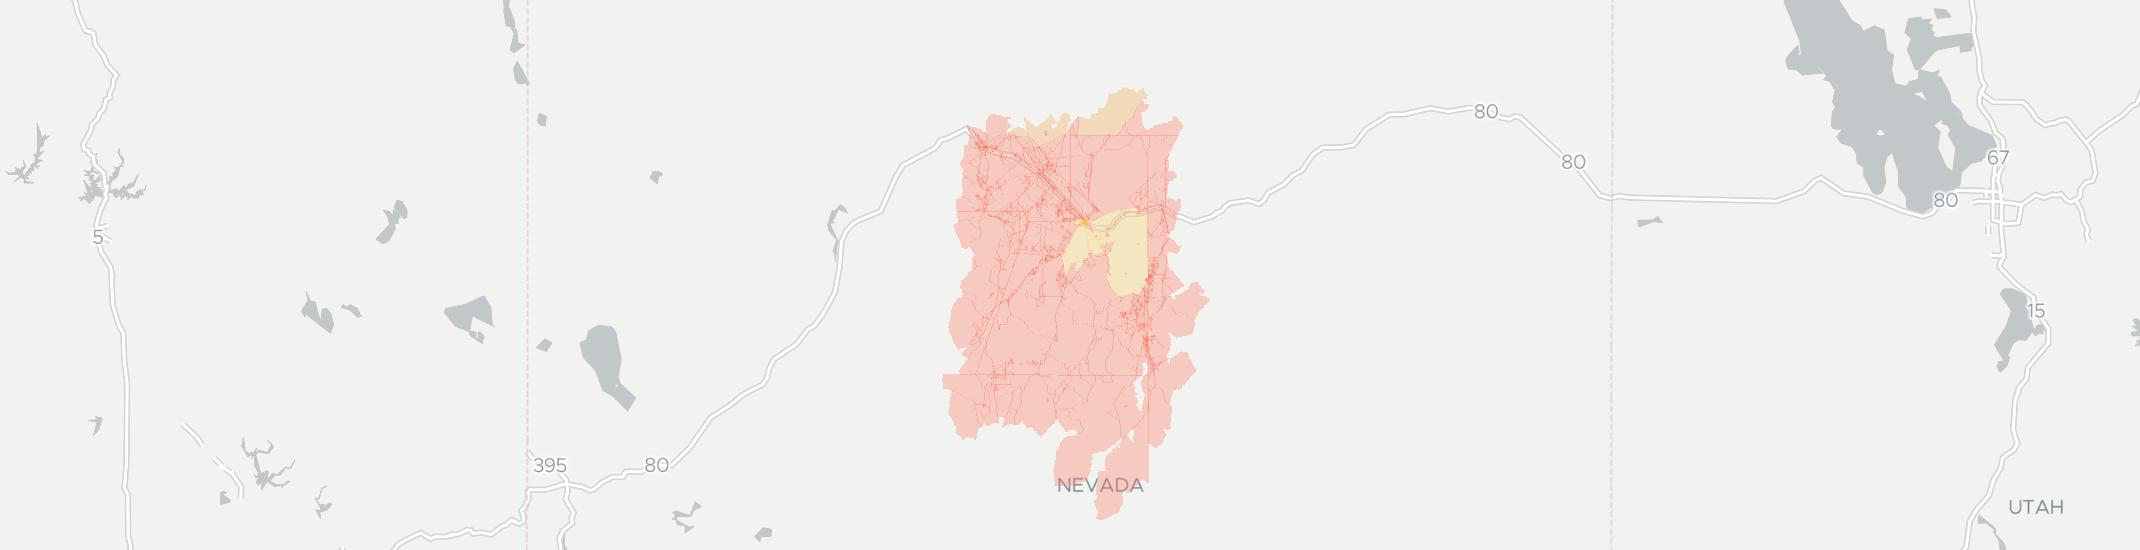 Battle Mountain has 8 Internet Service Providers | Up to 18 Mbps on map of south mountain battle, battleground nevada, seismic map for nevada, unr campus map reno nevada, map of blackfoot idaho, wind resource map nevada, united states map on nevada, map carson sink nevada, map of rigby idaho, map of nevada mountain ranges,